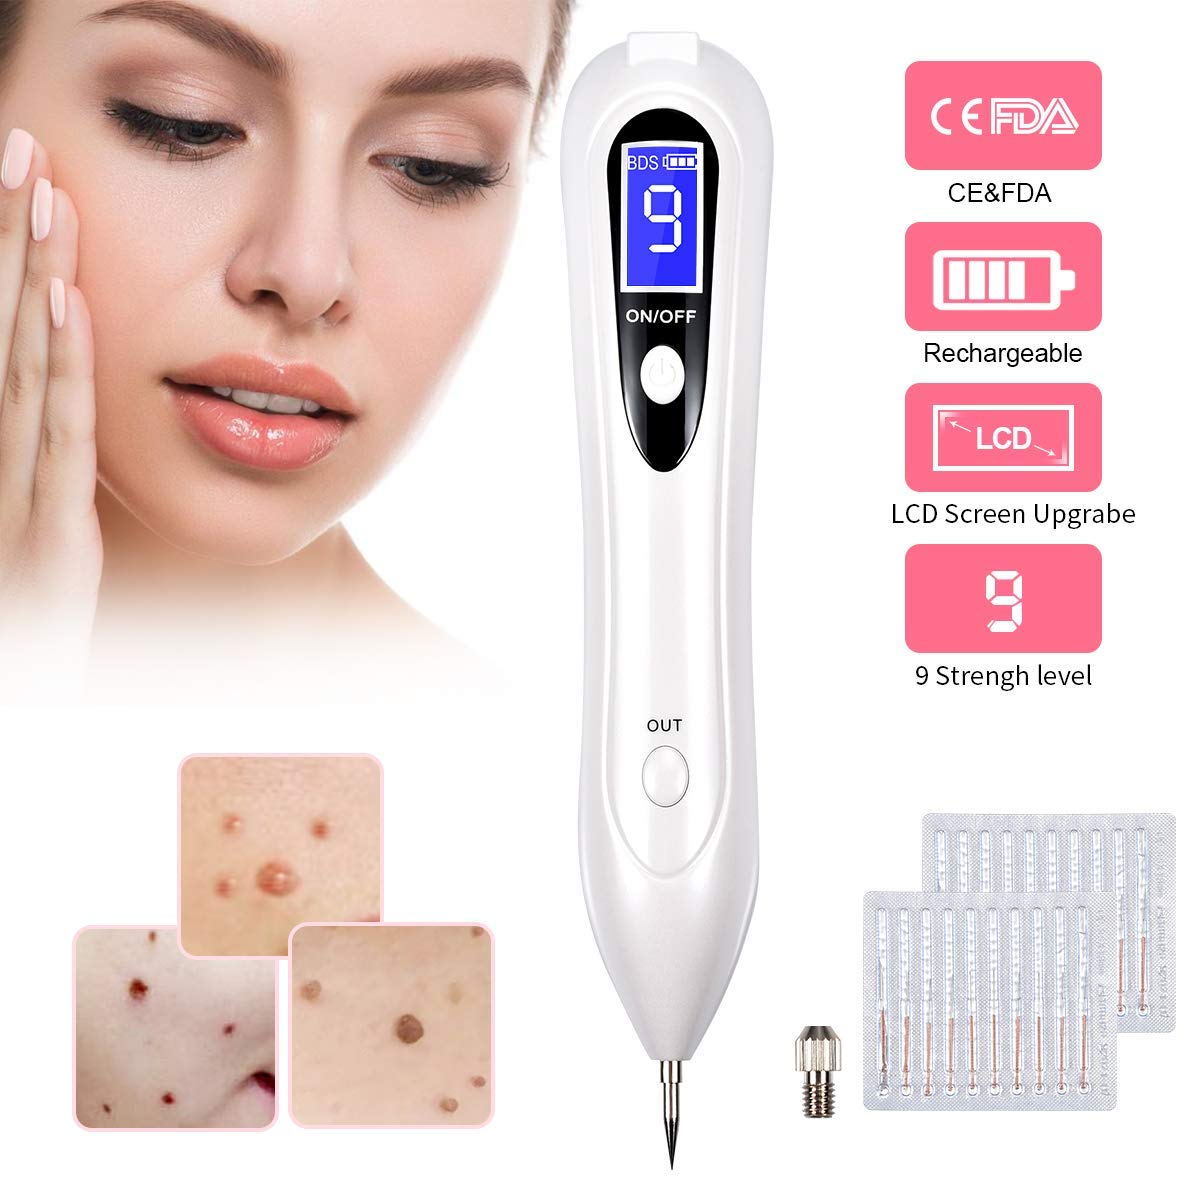 Portable Skin Tag Repair Kit, 9-Speed Adjustable Freckle & Tattoo Beauty Equipment with Replaceable Needle, Home USB Rechargeable